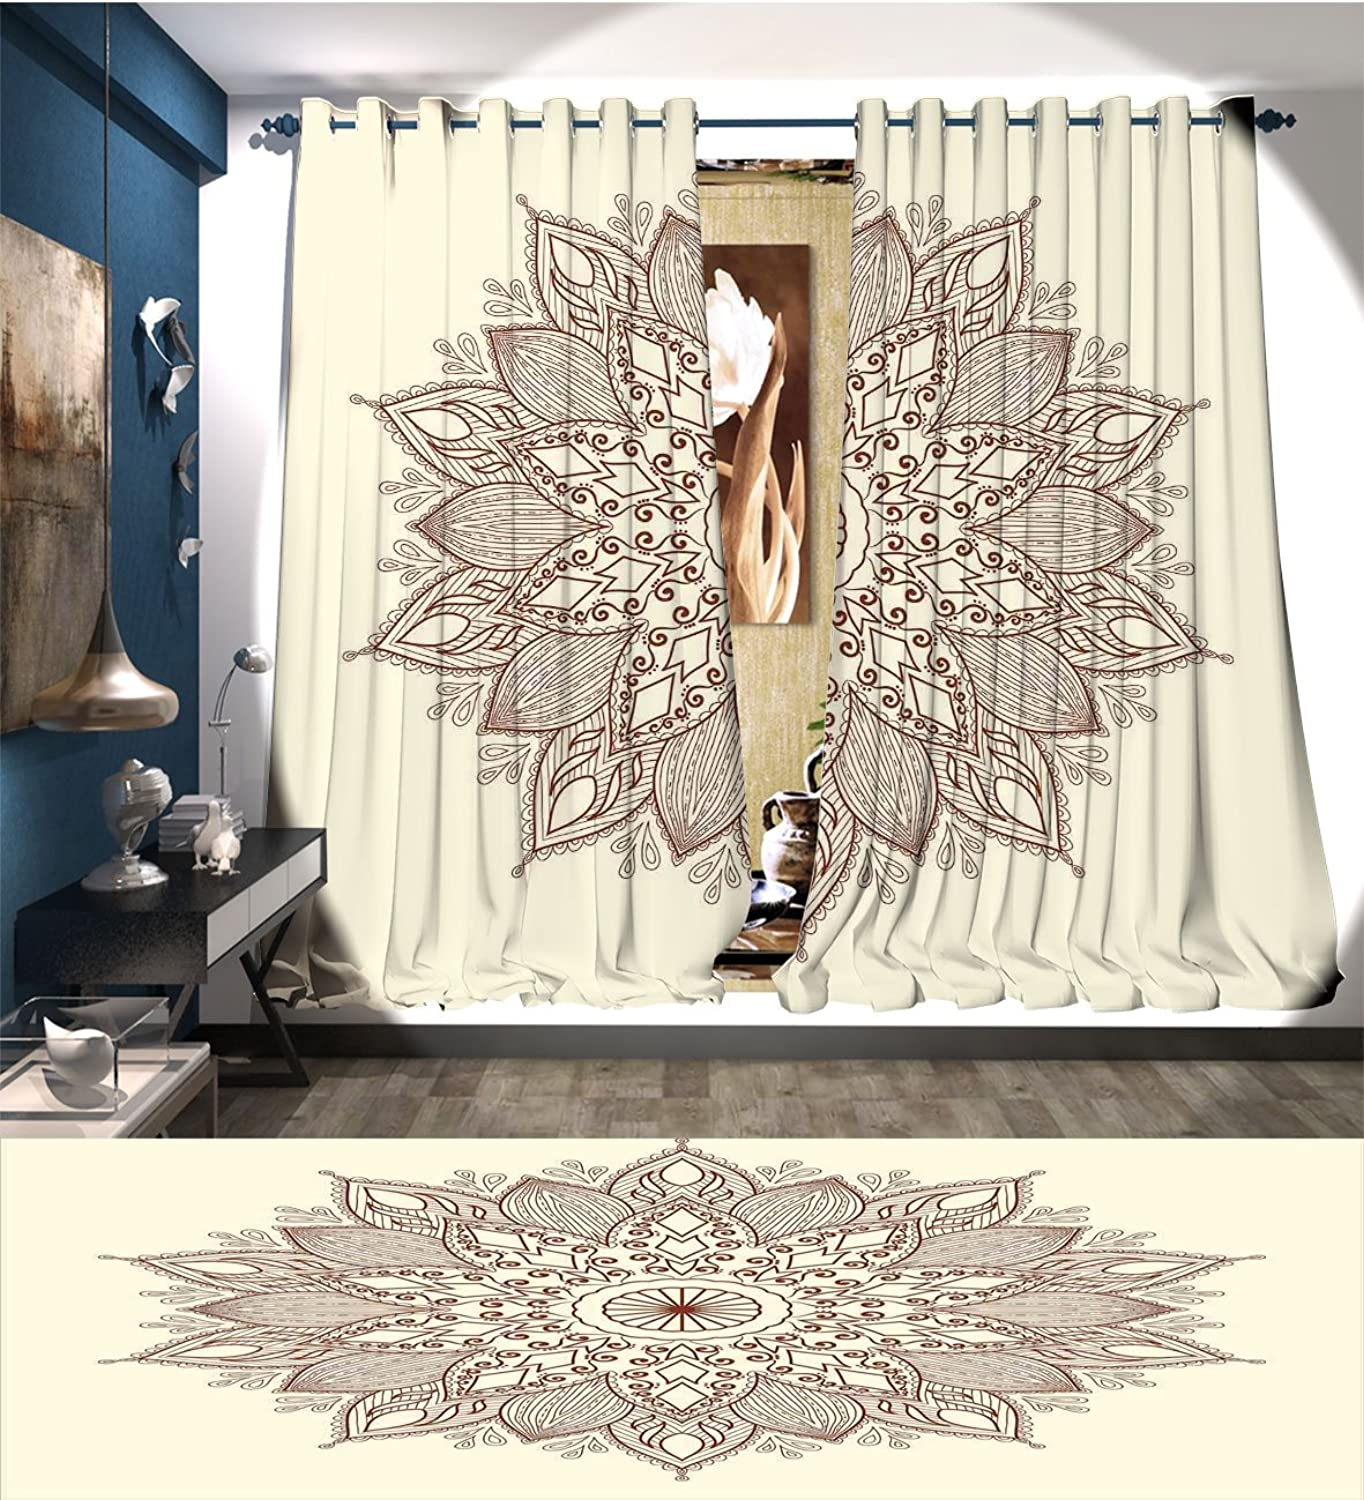 BarronTextile Beige Window Curtain Fabric Mandala Flower Ethnic Lace Circle Ornate Retro Pattern Eastern Universe Artistic Drapes for Living Room Ivory Brown